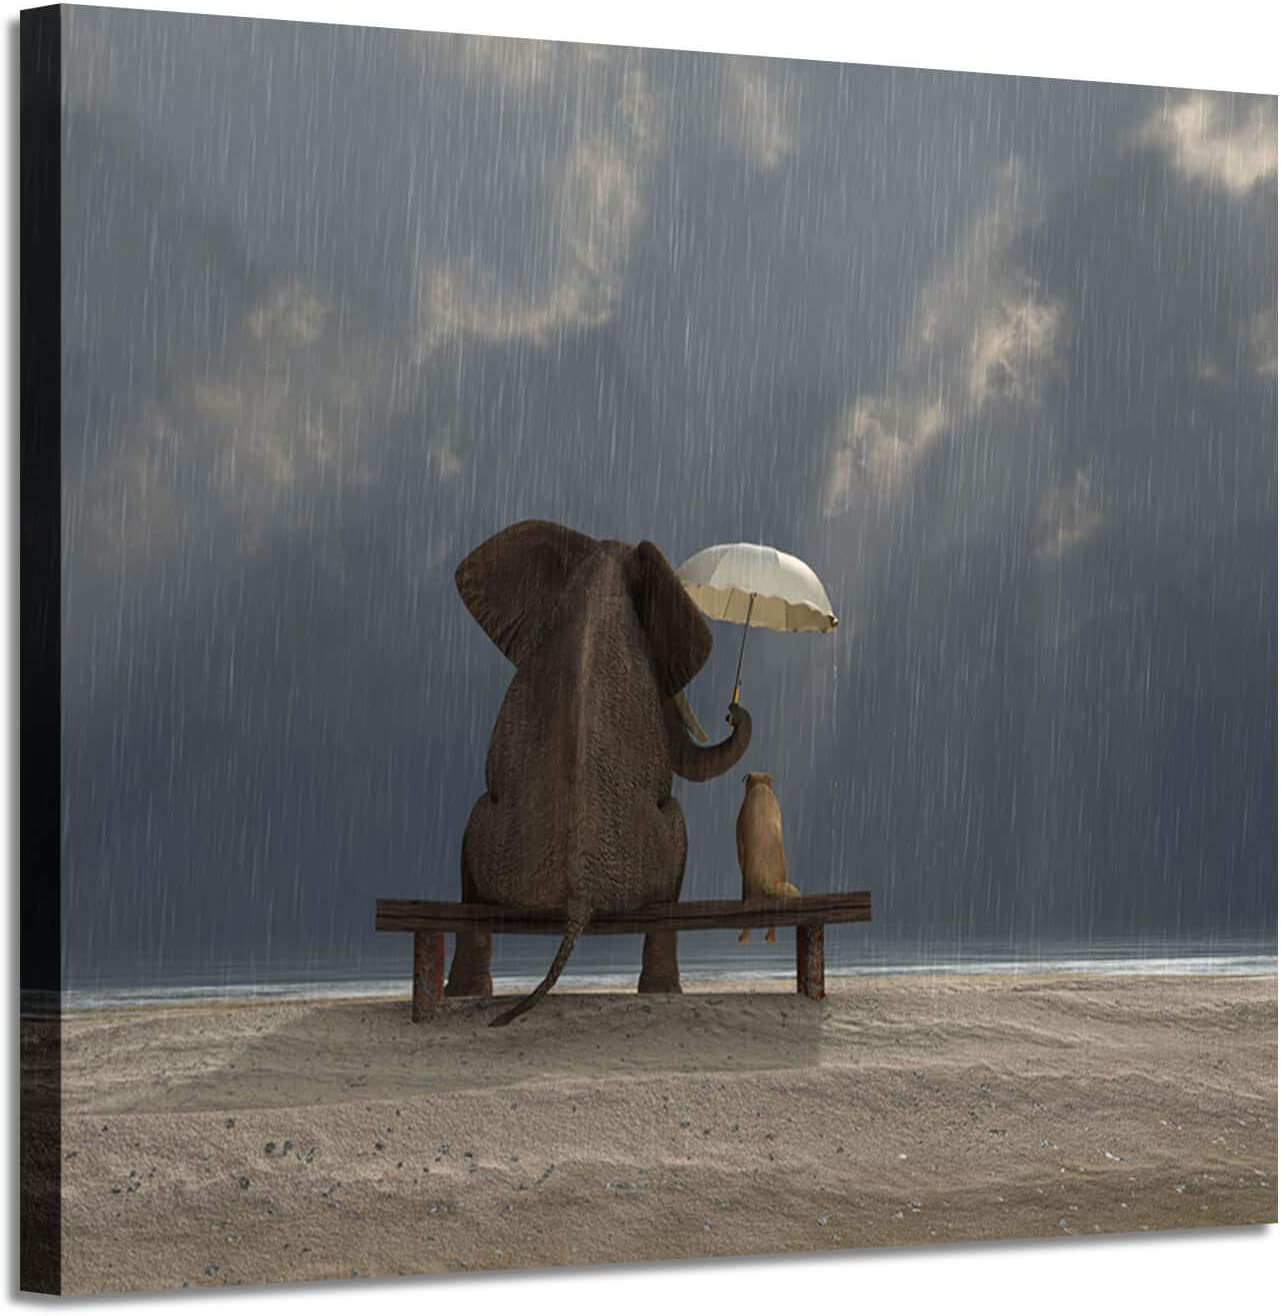 Elephant & Dog Picture Canvas Print: Best Friends of Animals Artwork Painting for Wall Art for Kids Room (24